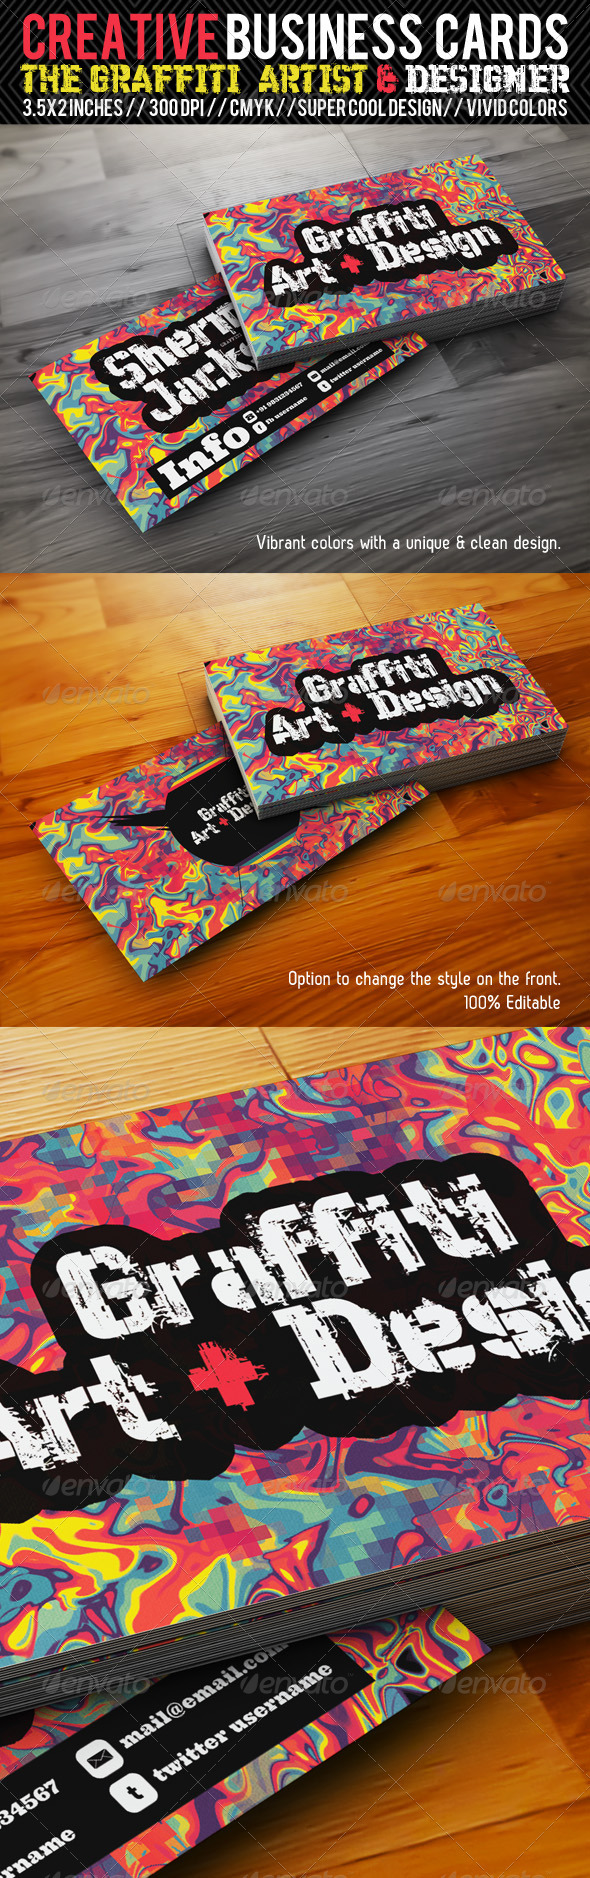 GraphicRiver Creative Business Card#3-Grafitti Art & Designer 1837426